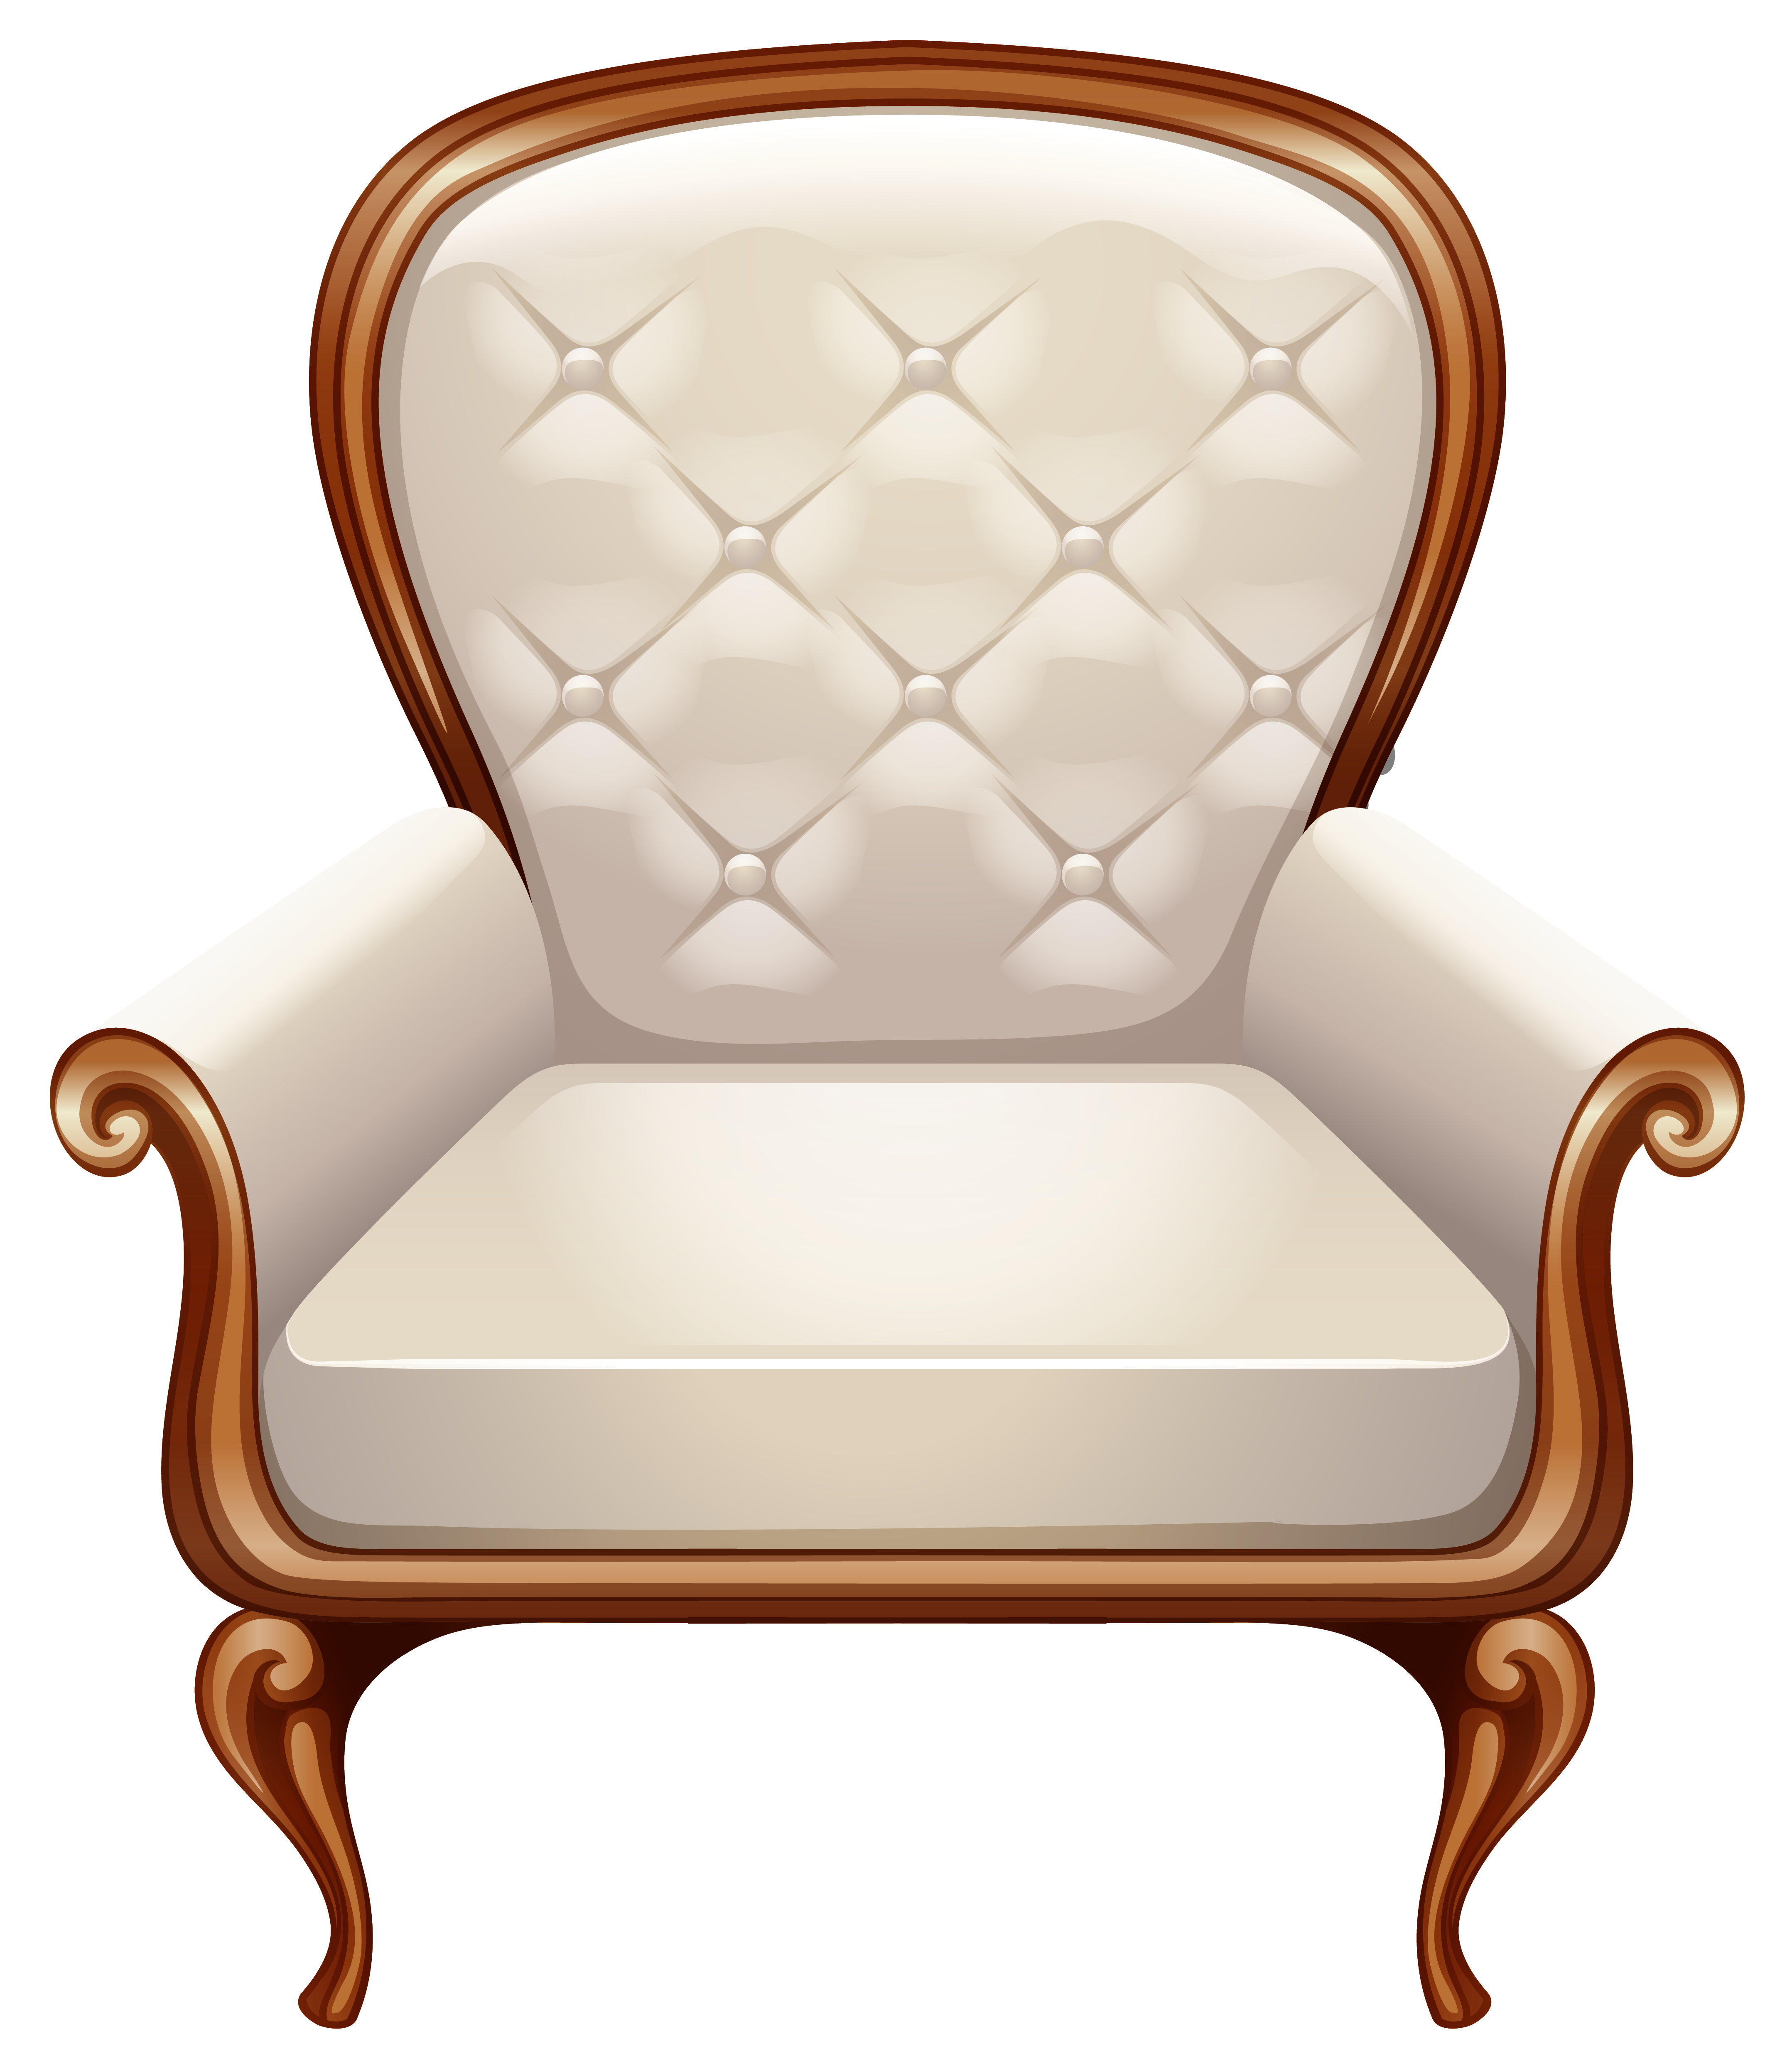 Chair Png image #40531 - Chair PNG